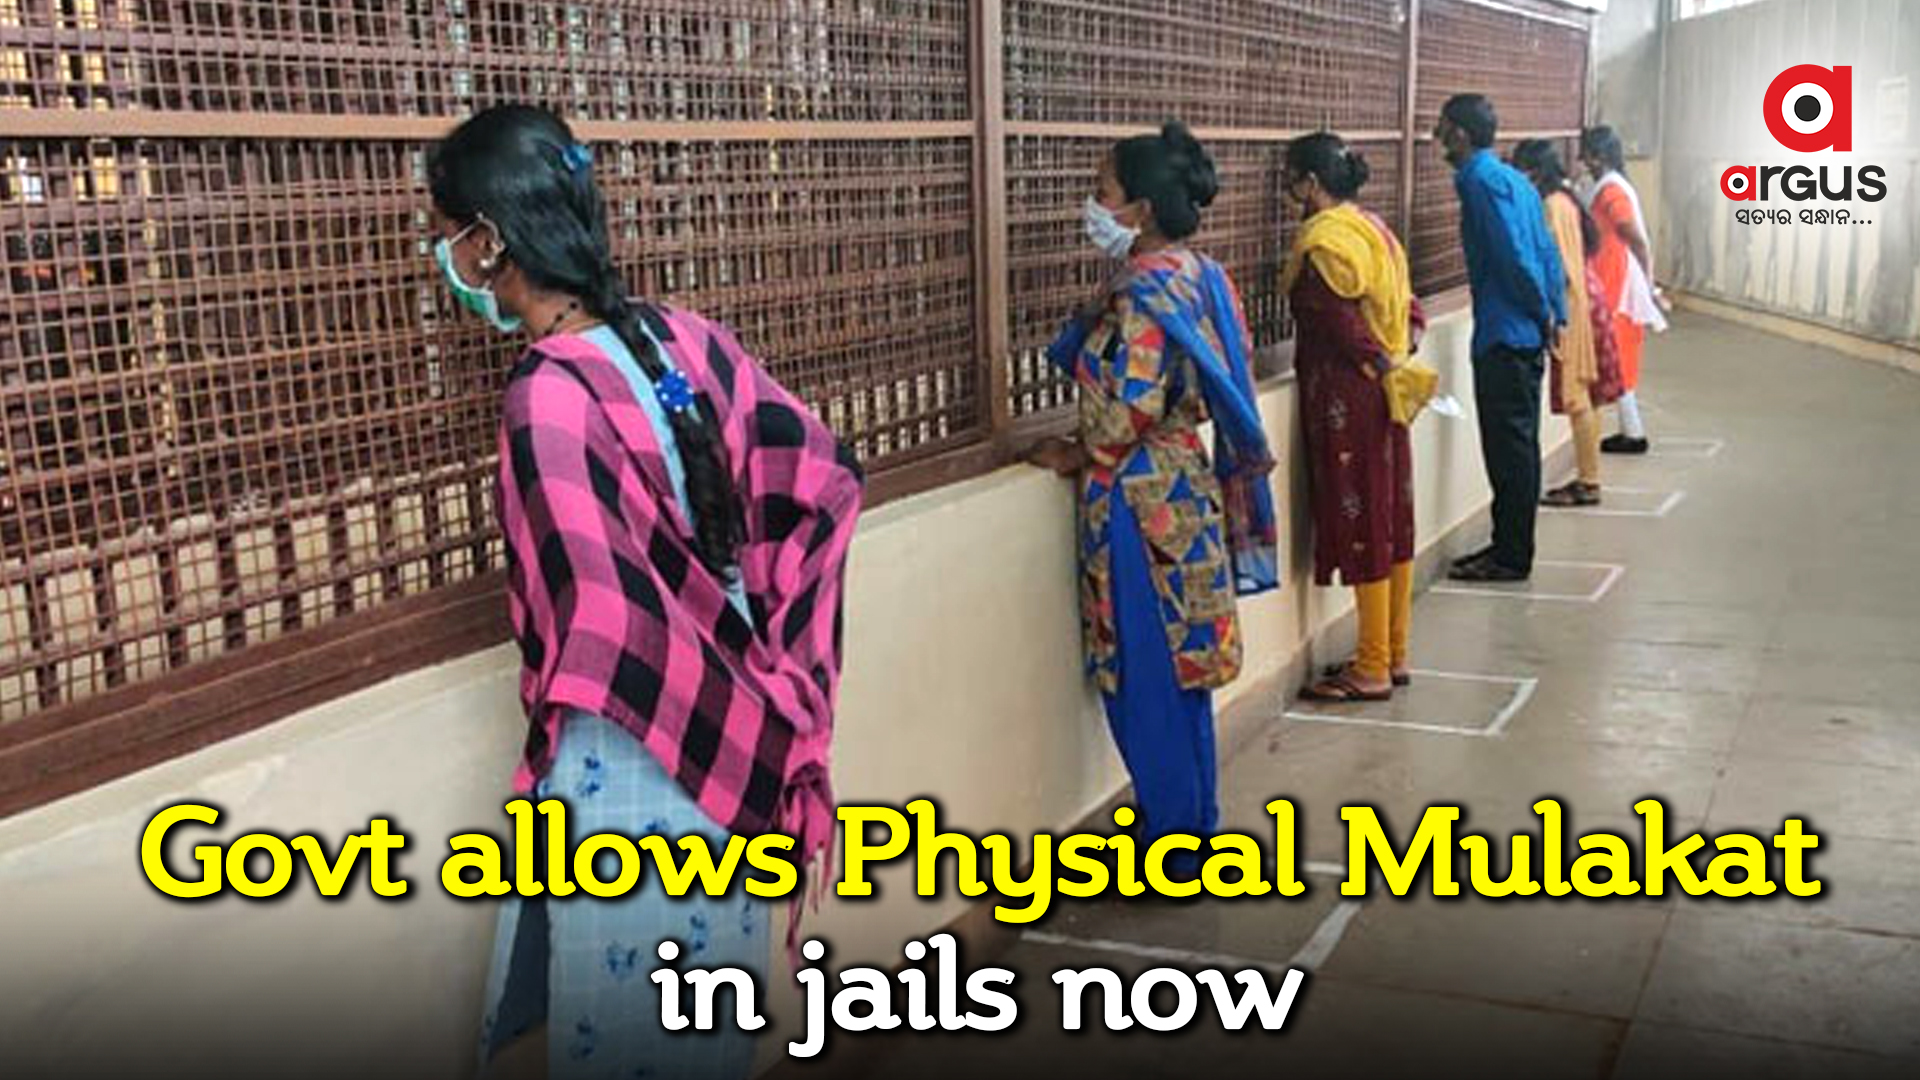 Govt allows Physical Mulakat in jails now